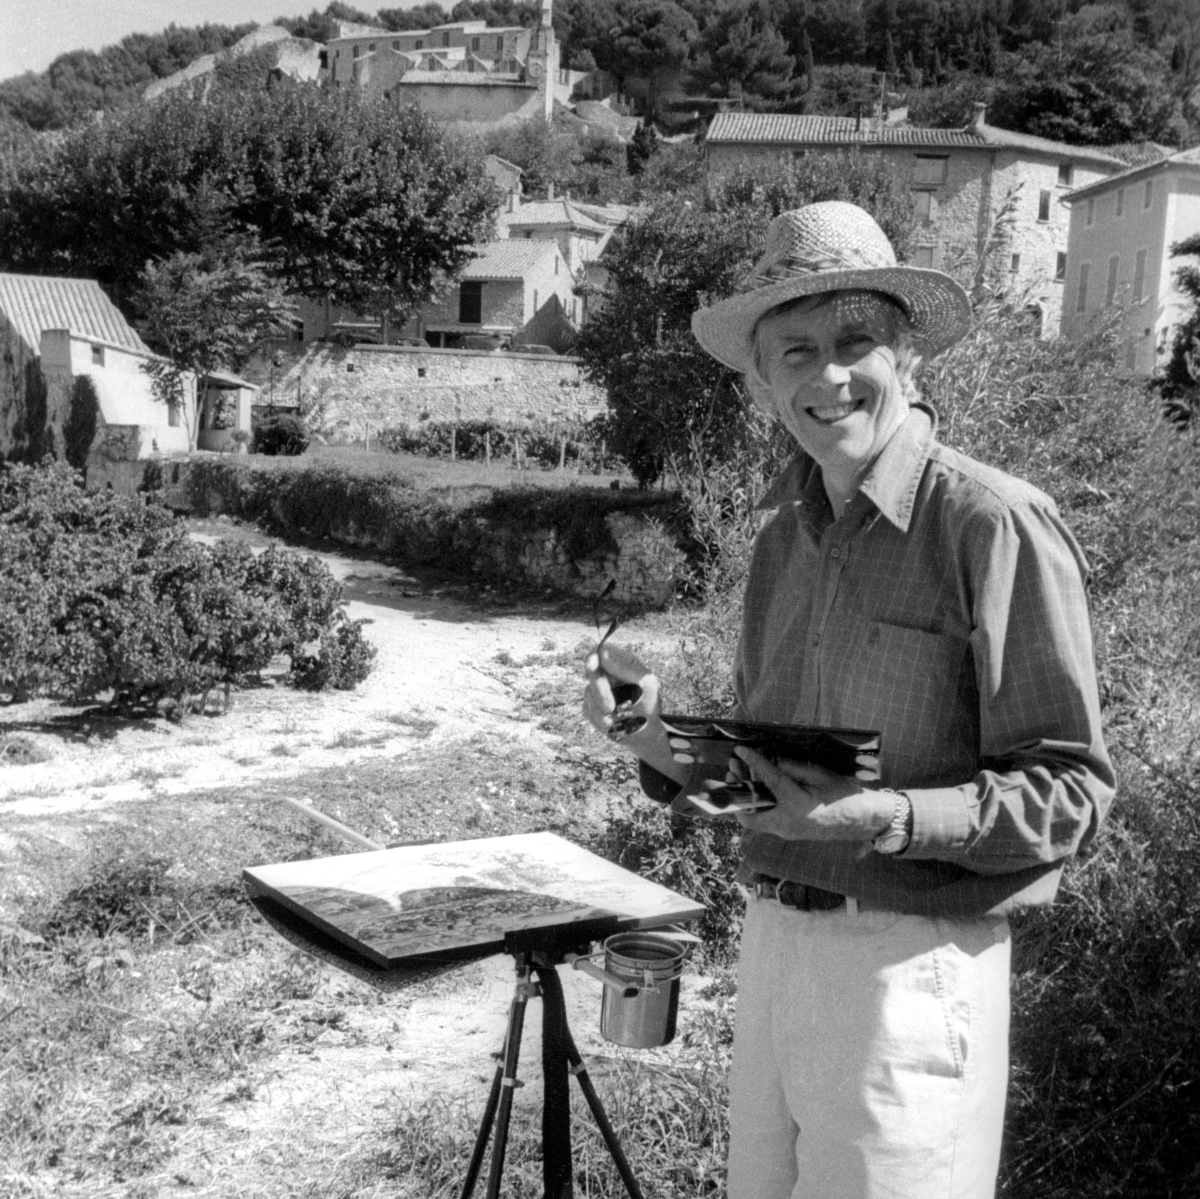 Ted Dyer at work in Provence painting at his easel in a vineyard in the village of Gigondas